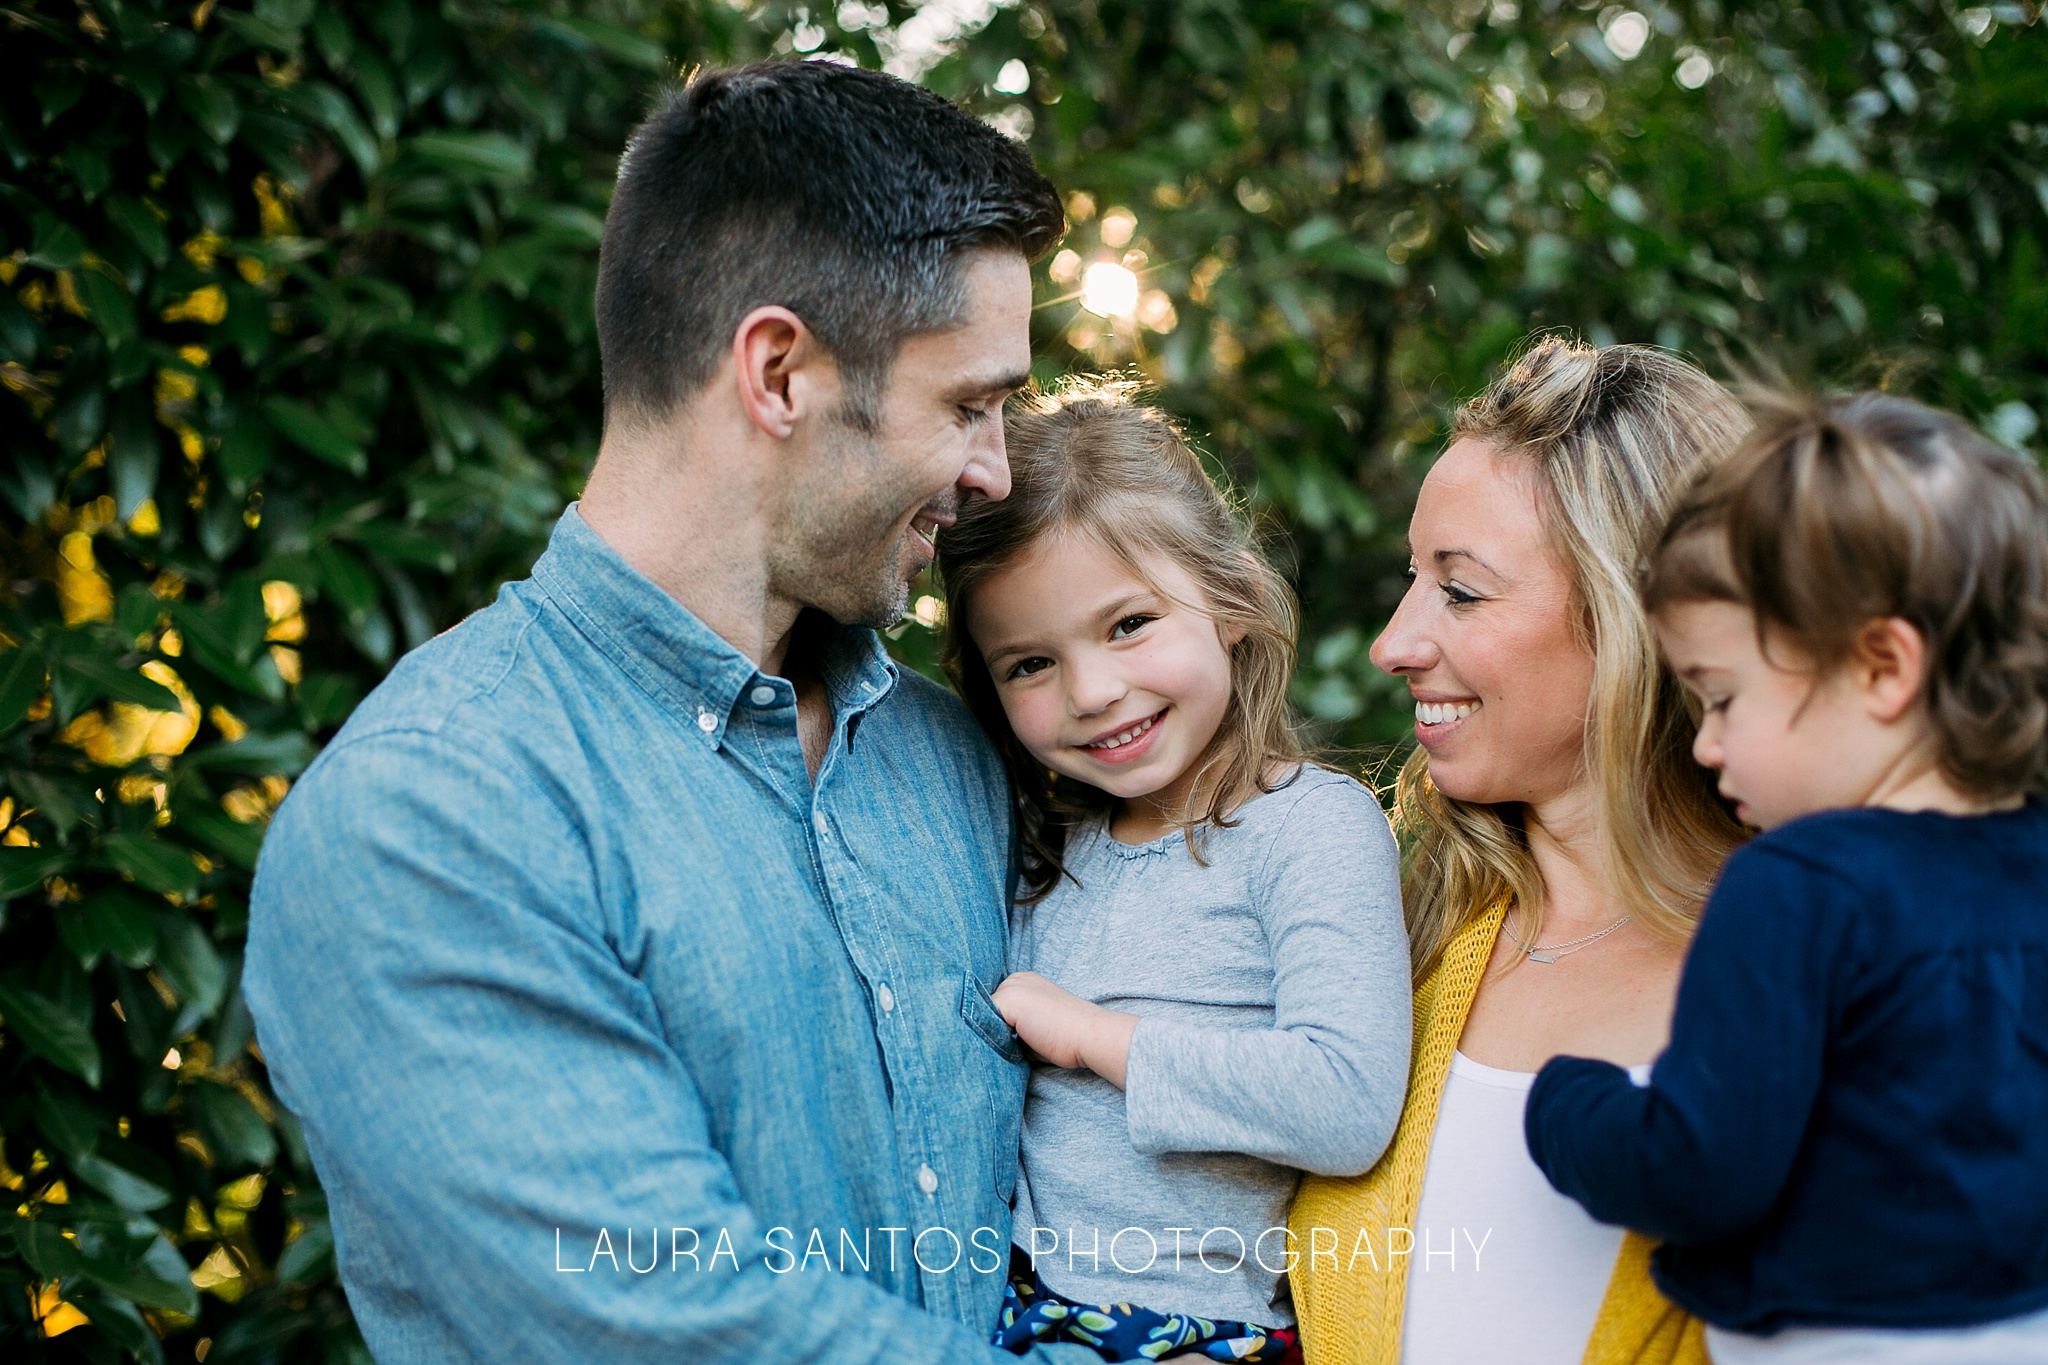 Laura Santos Photography Portland Oregon Family Photographer_0093.jpg